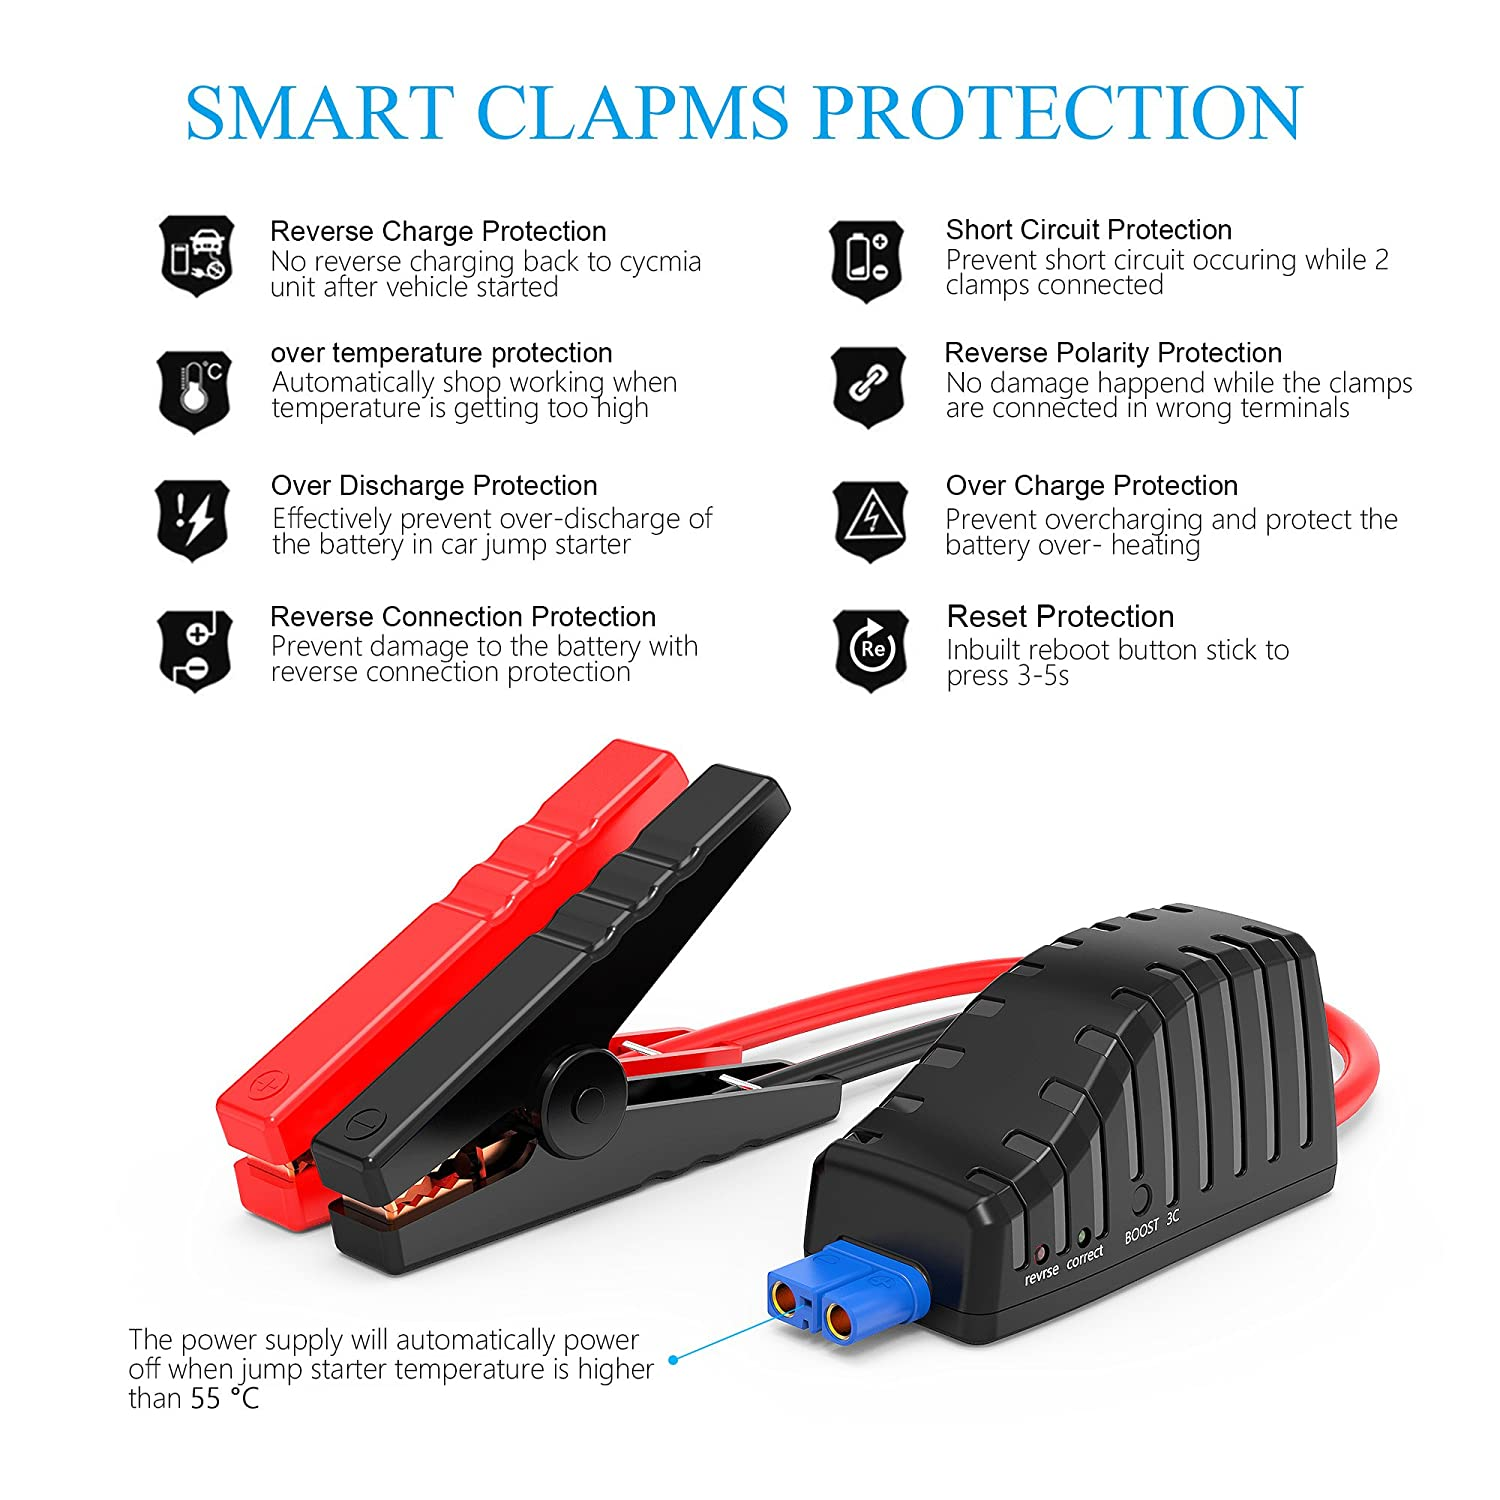 Cycmia 800a Peak Portable Car Jump Starter With Usb Type C 5v 3a Battery Cable Diagram A Charger Reverses Port Up To 72l Gas 55l Diesel Engine Booster And Phone Smart